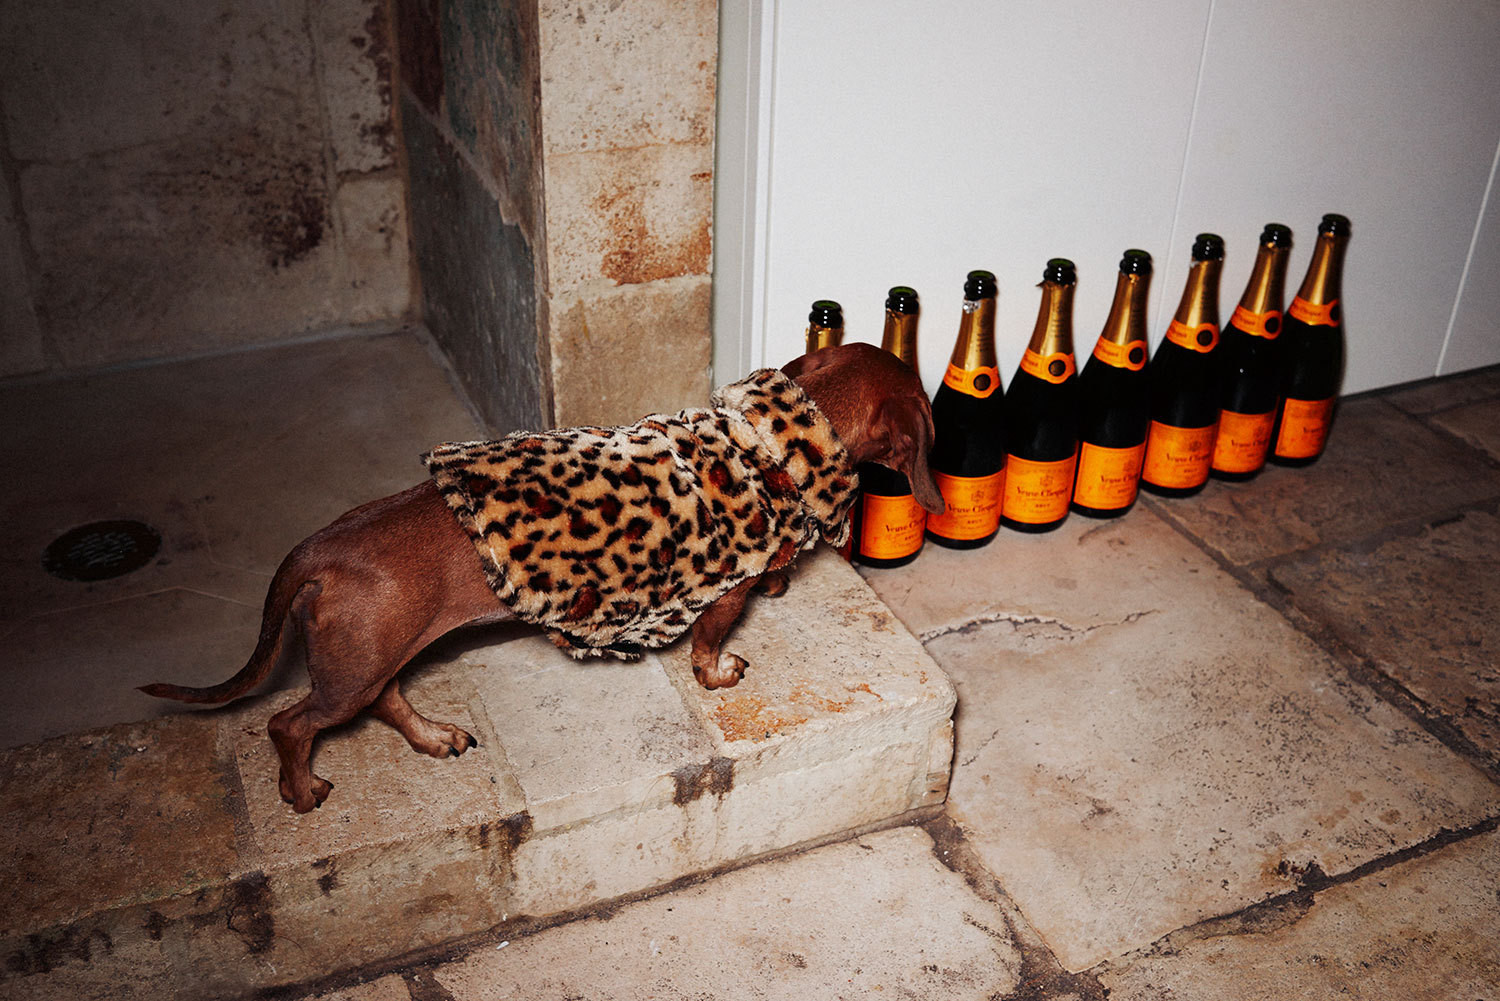 Bergdorf the dachshund takes stock of a growing pile of empty bottles.